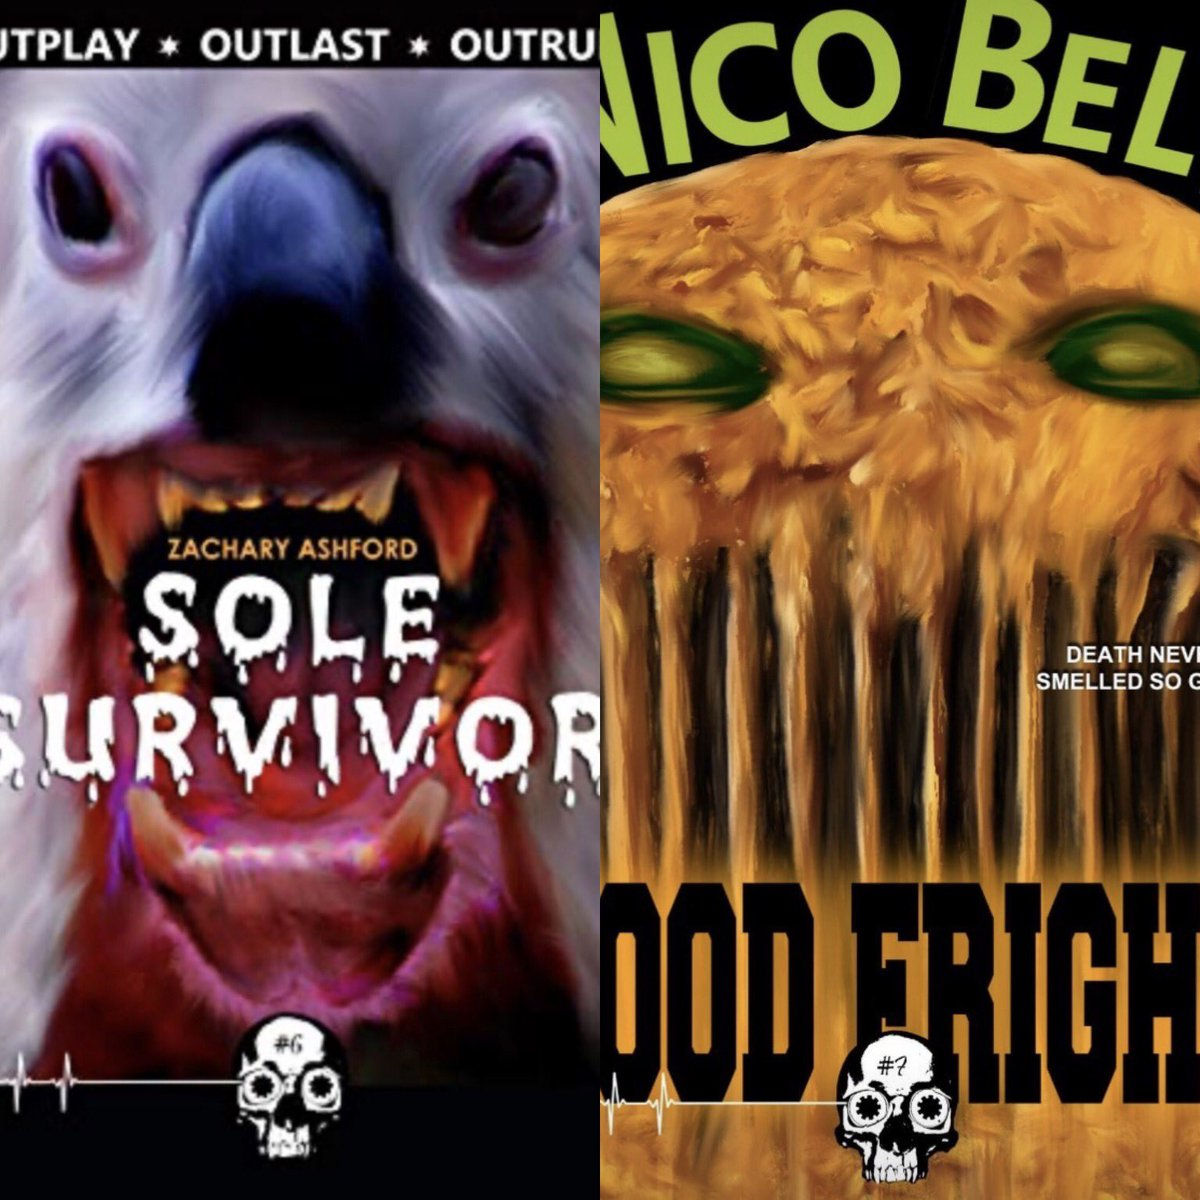 Its a #book #GIVEAWAY! Nico Bell and I are giving free e-copies of our debut novels to a lucky winner! All you need to do to enter is: Like this tweet Follow me on twitter Follow Nico @nicobellfiction For a bonus entry, retweet this Ends 4/1 8am EST #WritingCommunity